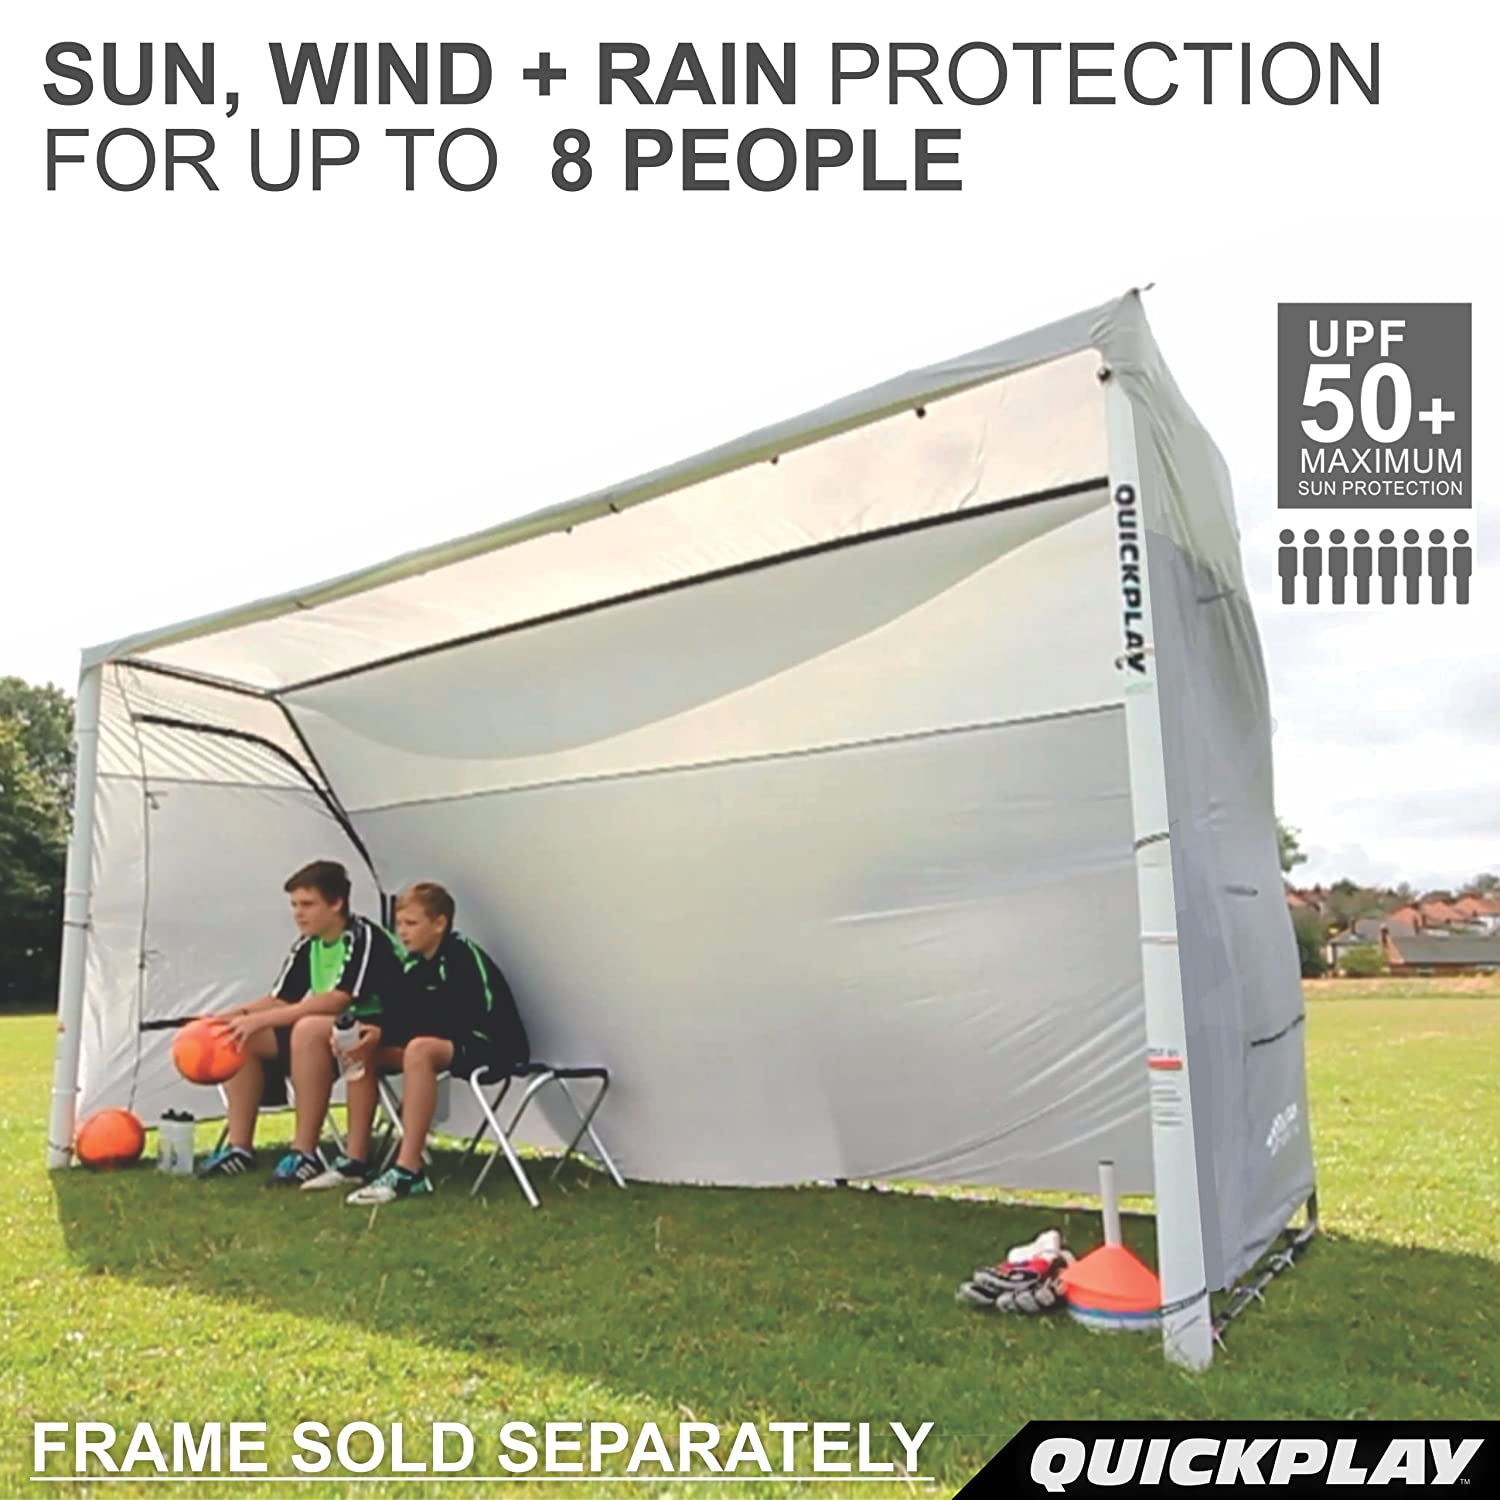 Amazon.com  QUICKPLAY Portable Soccer Team Shelter Cover Only - designed to fit the QUICKPLAY 12x6u0027 Fold Away Soccer Goal frame  Sports u0026 Outdoors  sc 1 st  Amazon.com & Amazon.com : QUICKPLAY Portable Soccer Team Shelter Cover Only ...